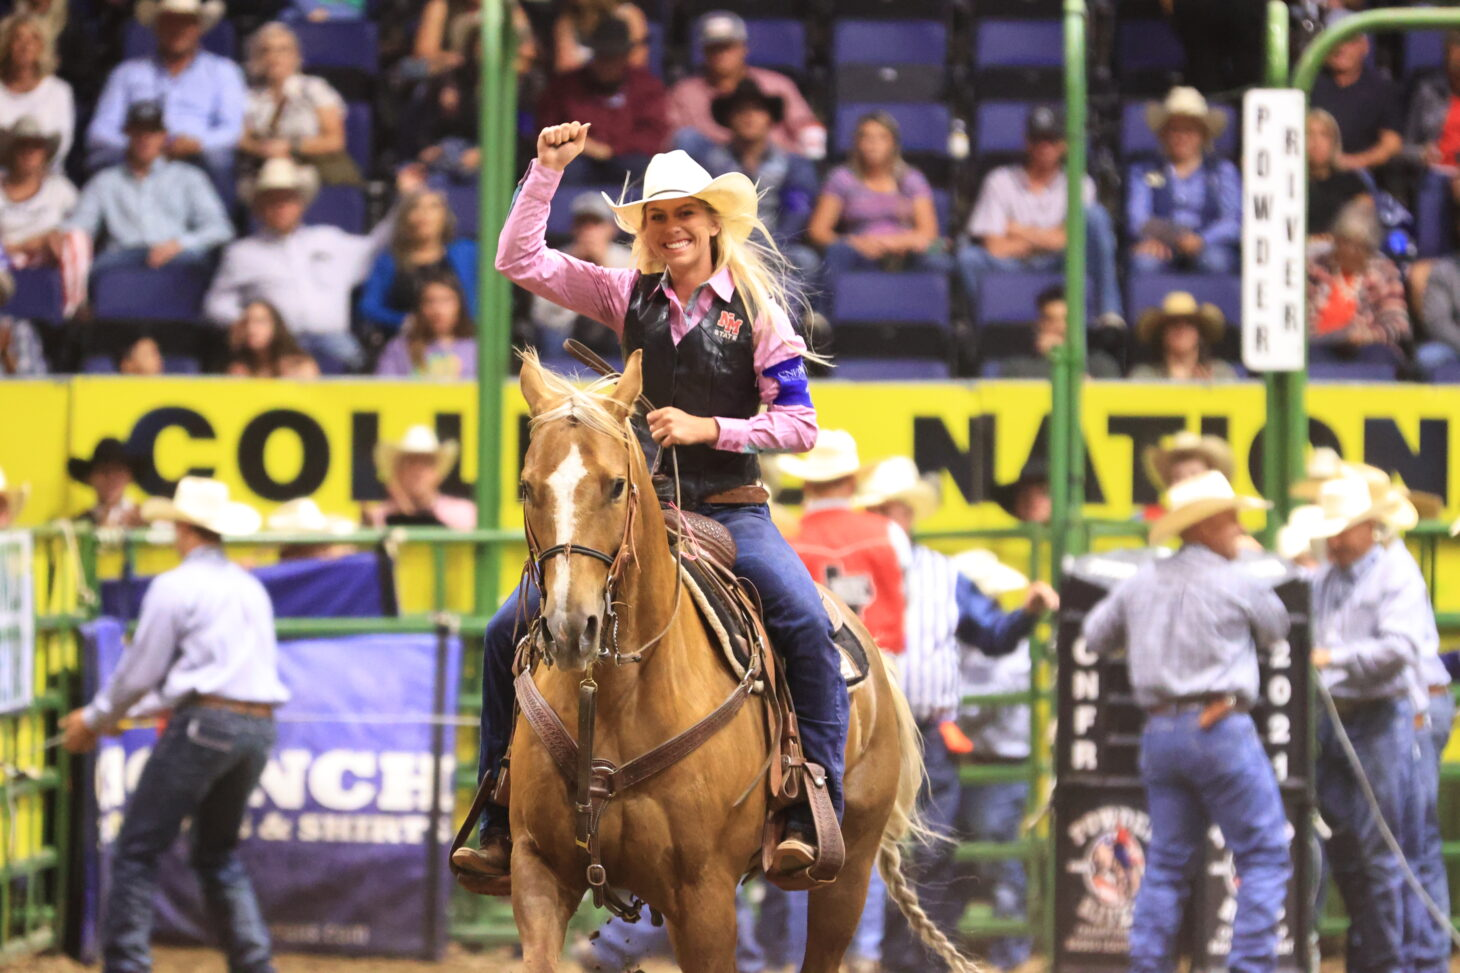 Bethanie Shofner, a graduate student at New Mexico State University, competes in the breakaway contest at the College National Finals Rodeo in Casper, Wyoming, in June. She won the third round and tied the arena record – 1.6 seconds – for the fastest run roped at the finals.  | Courtesy CNFR